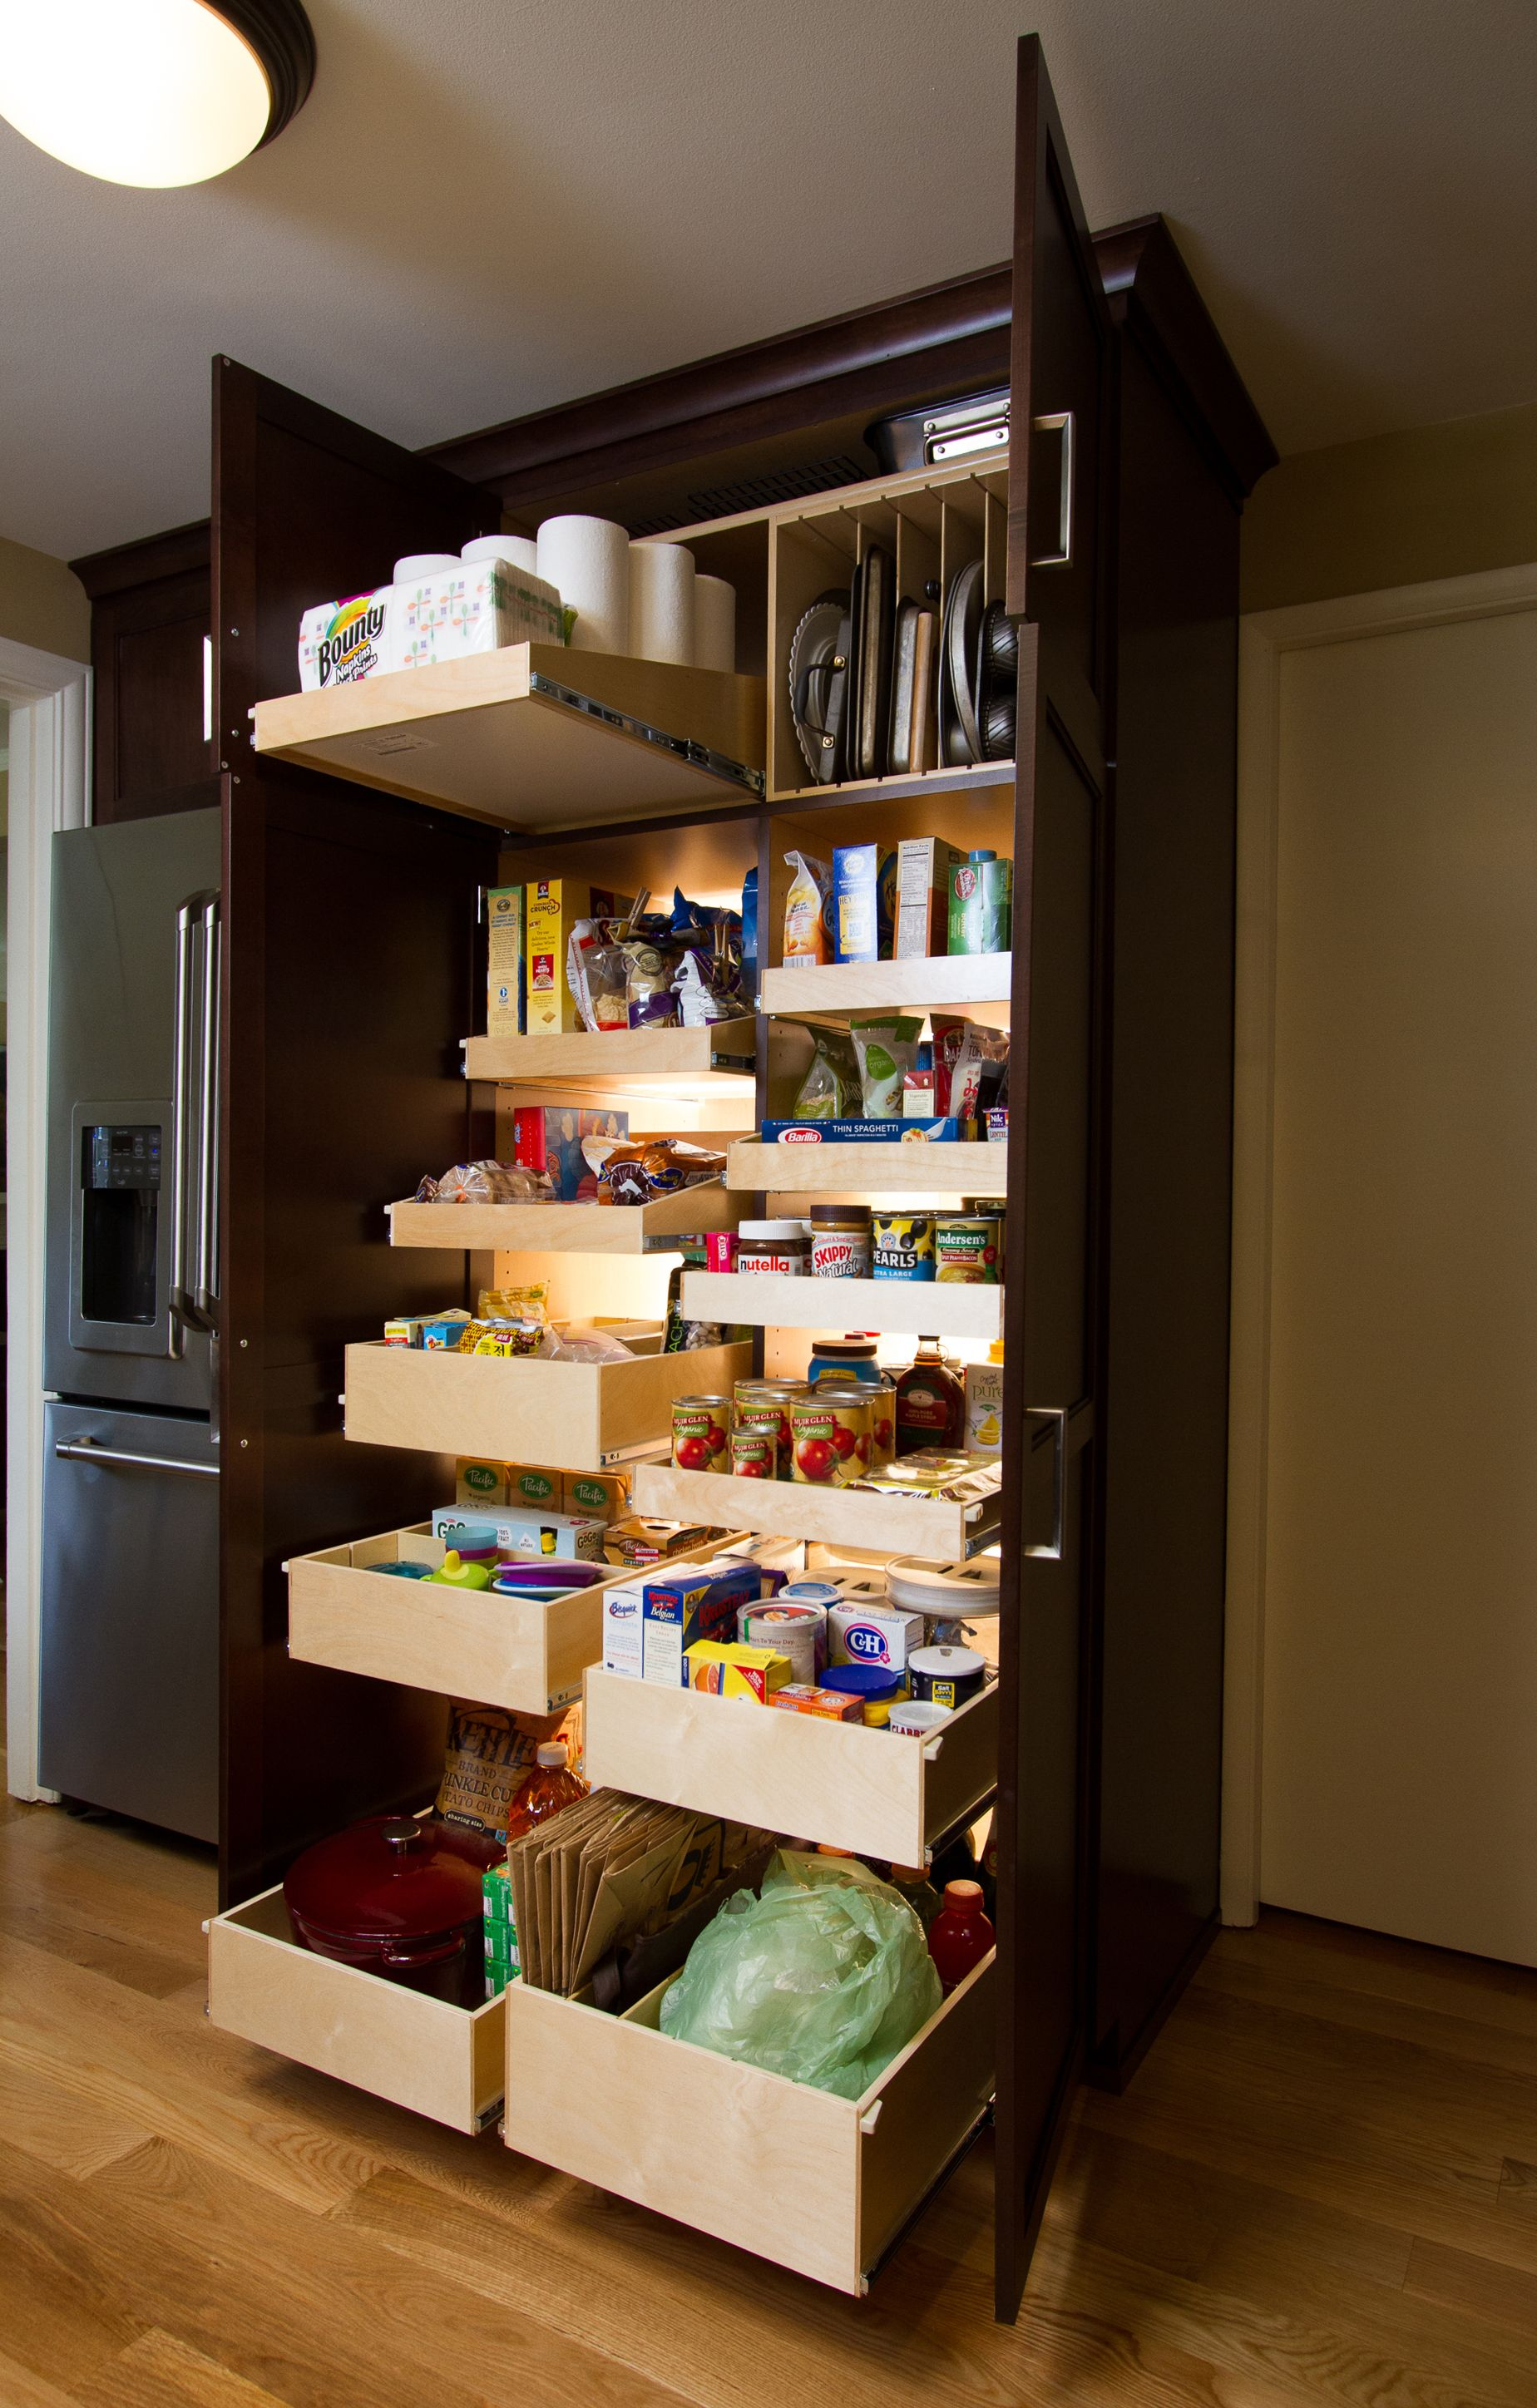 Kitchen Cabinets Slide Out Shelves Sneaky Storage Spaces That Will Declutter Your Kitchen